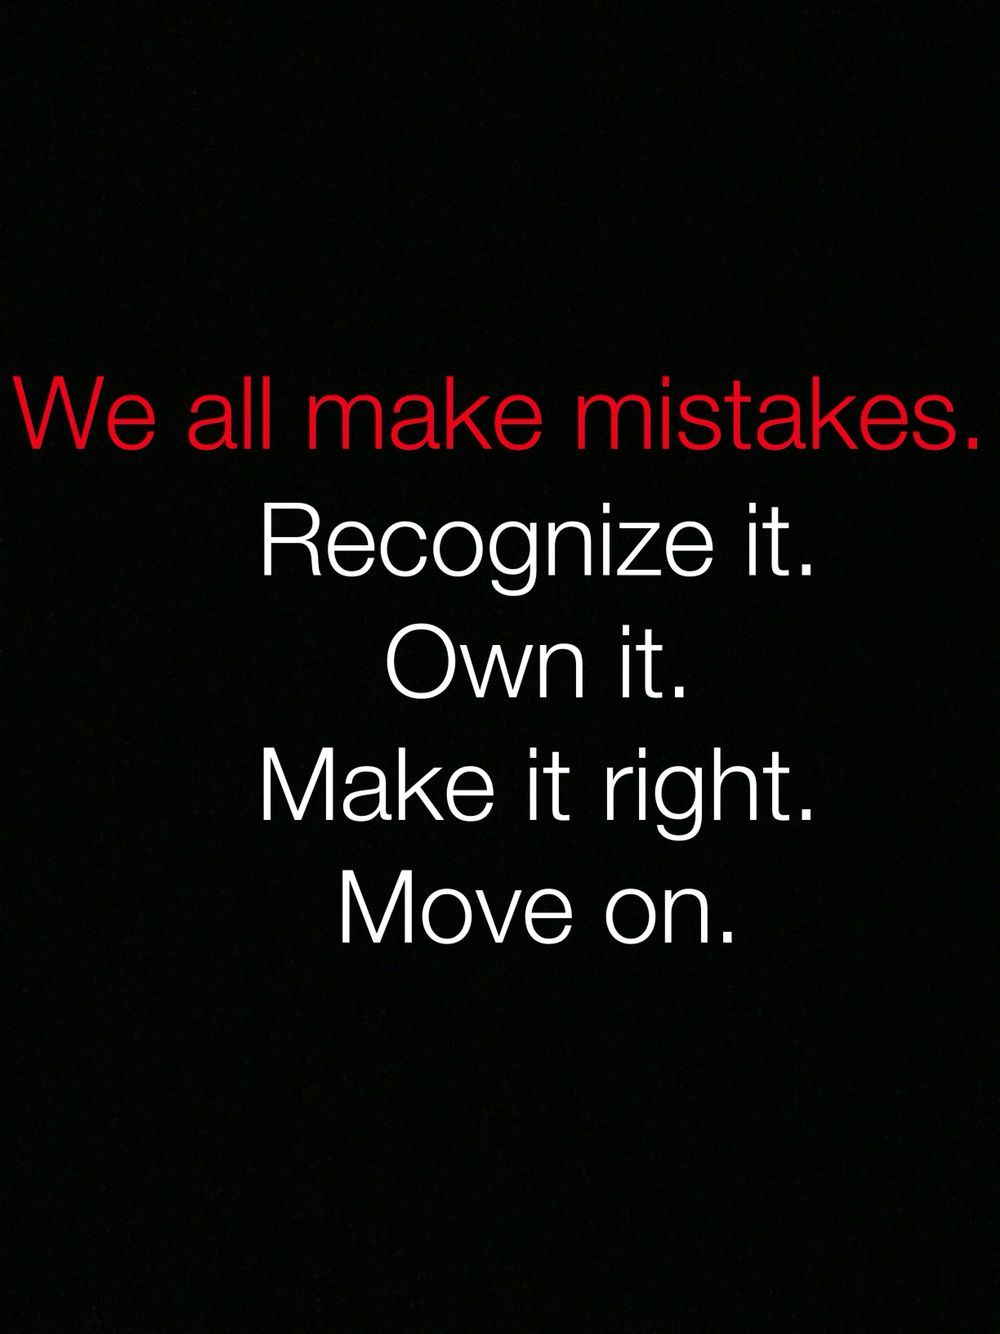 Mistakes || Inspirational quotes || Mentor quotes || Smart work advice || Young professionals || Professional advice || Career quotes || Life words to live by || Live advice || Life quotes #mentorquotes Mistakes || Inspirational quotes || Mentor quotes || Smart work advice || Young professionals || Professional advice || Career quotes || Life words to live by || Live advice || Life quotes #mentorquotes